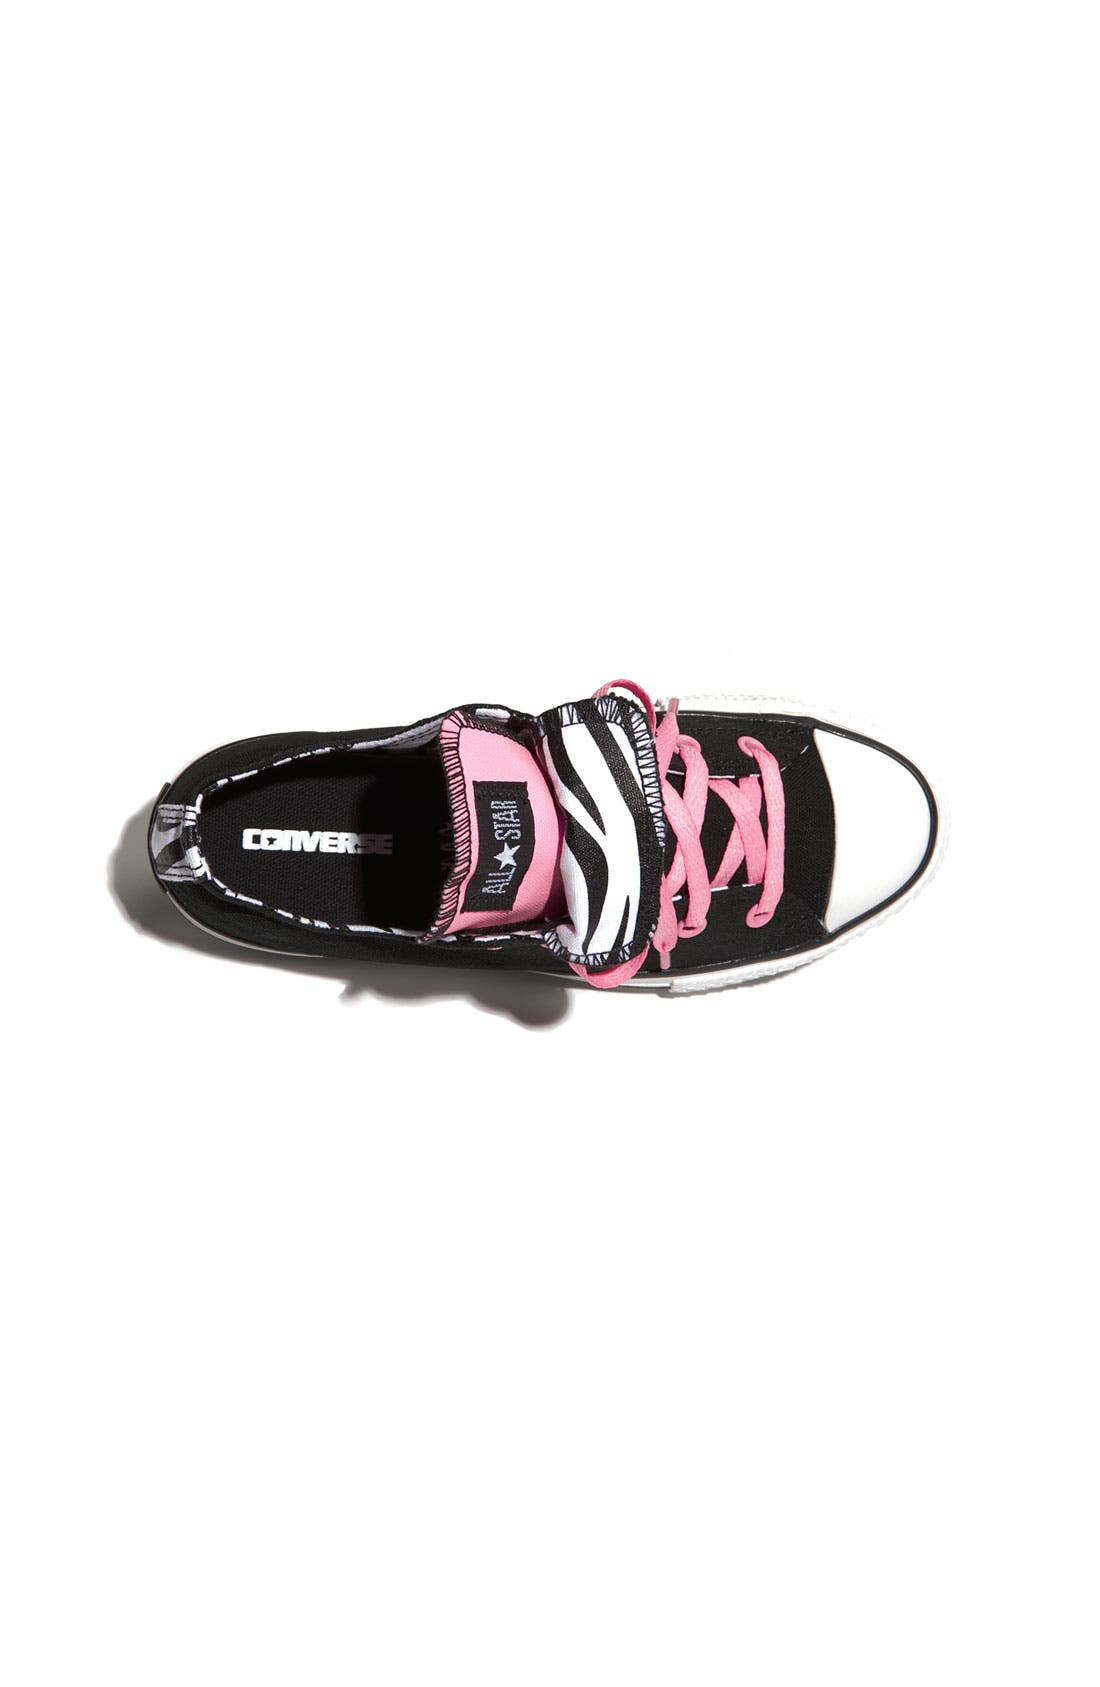 Alternate Image 3  - Converse 'Glow Print' Sneaker (Toddler, Little Kid & Big Kid)